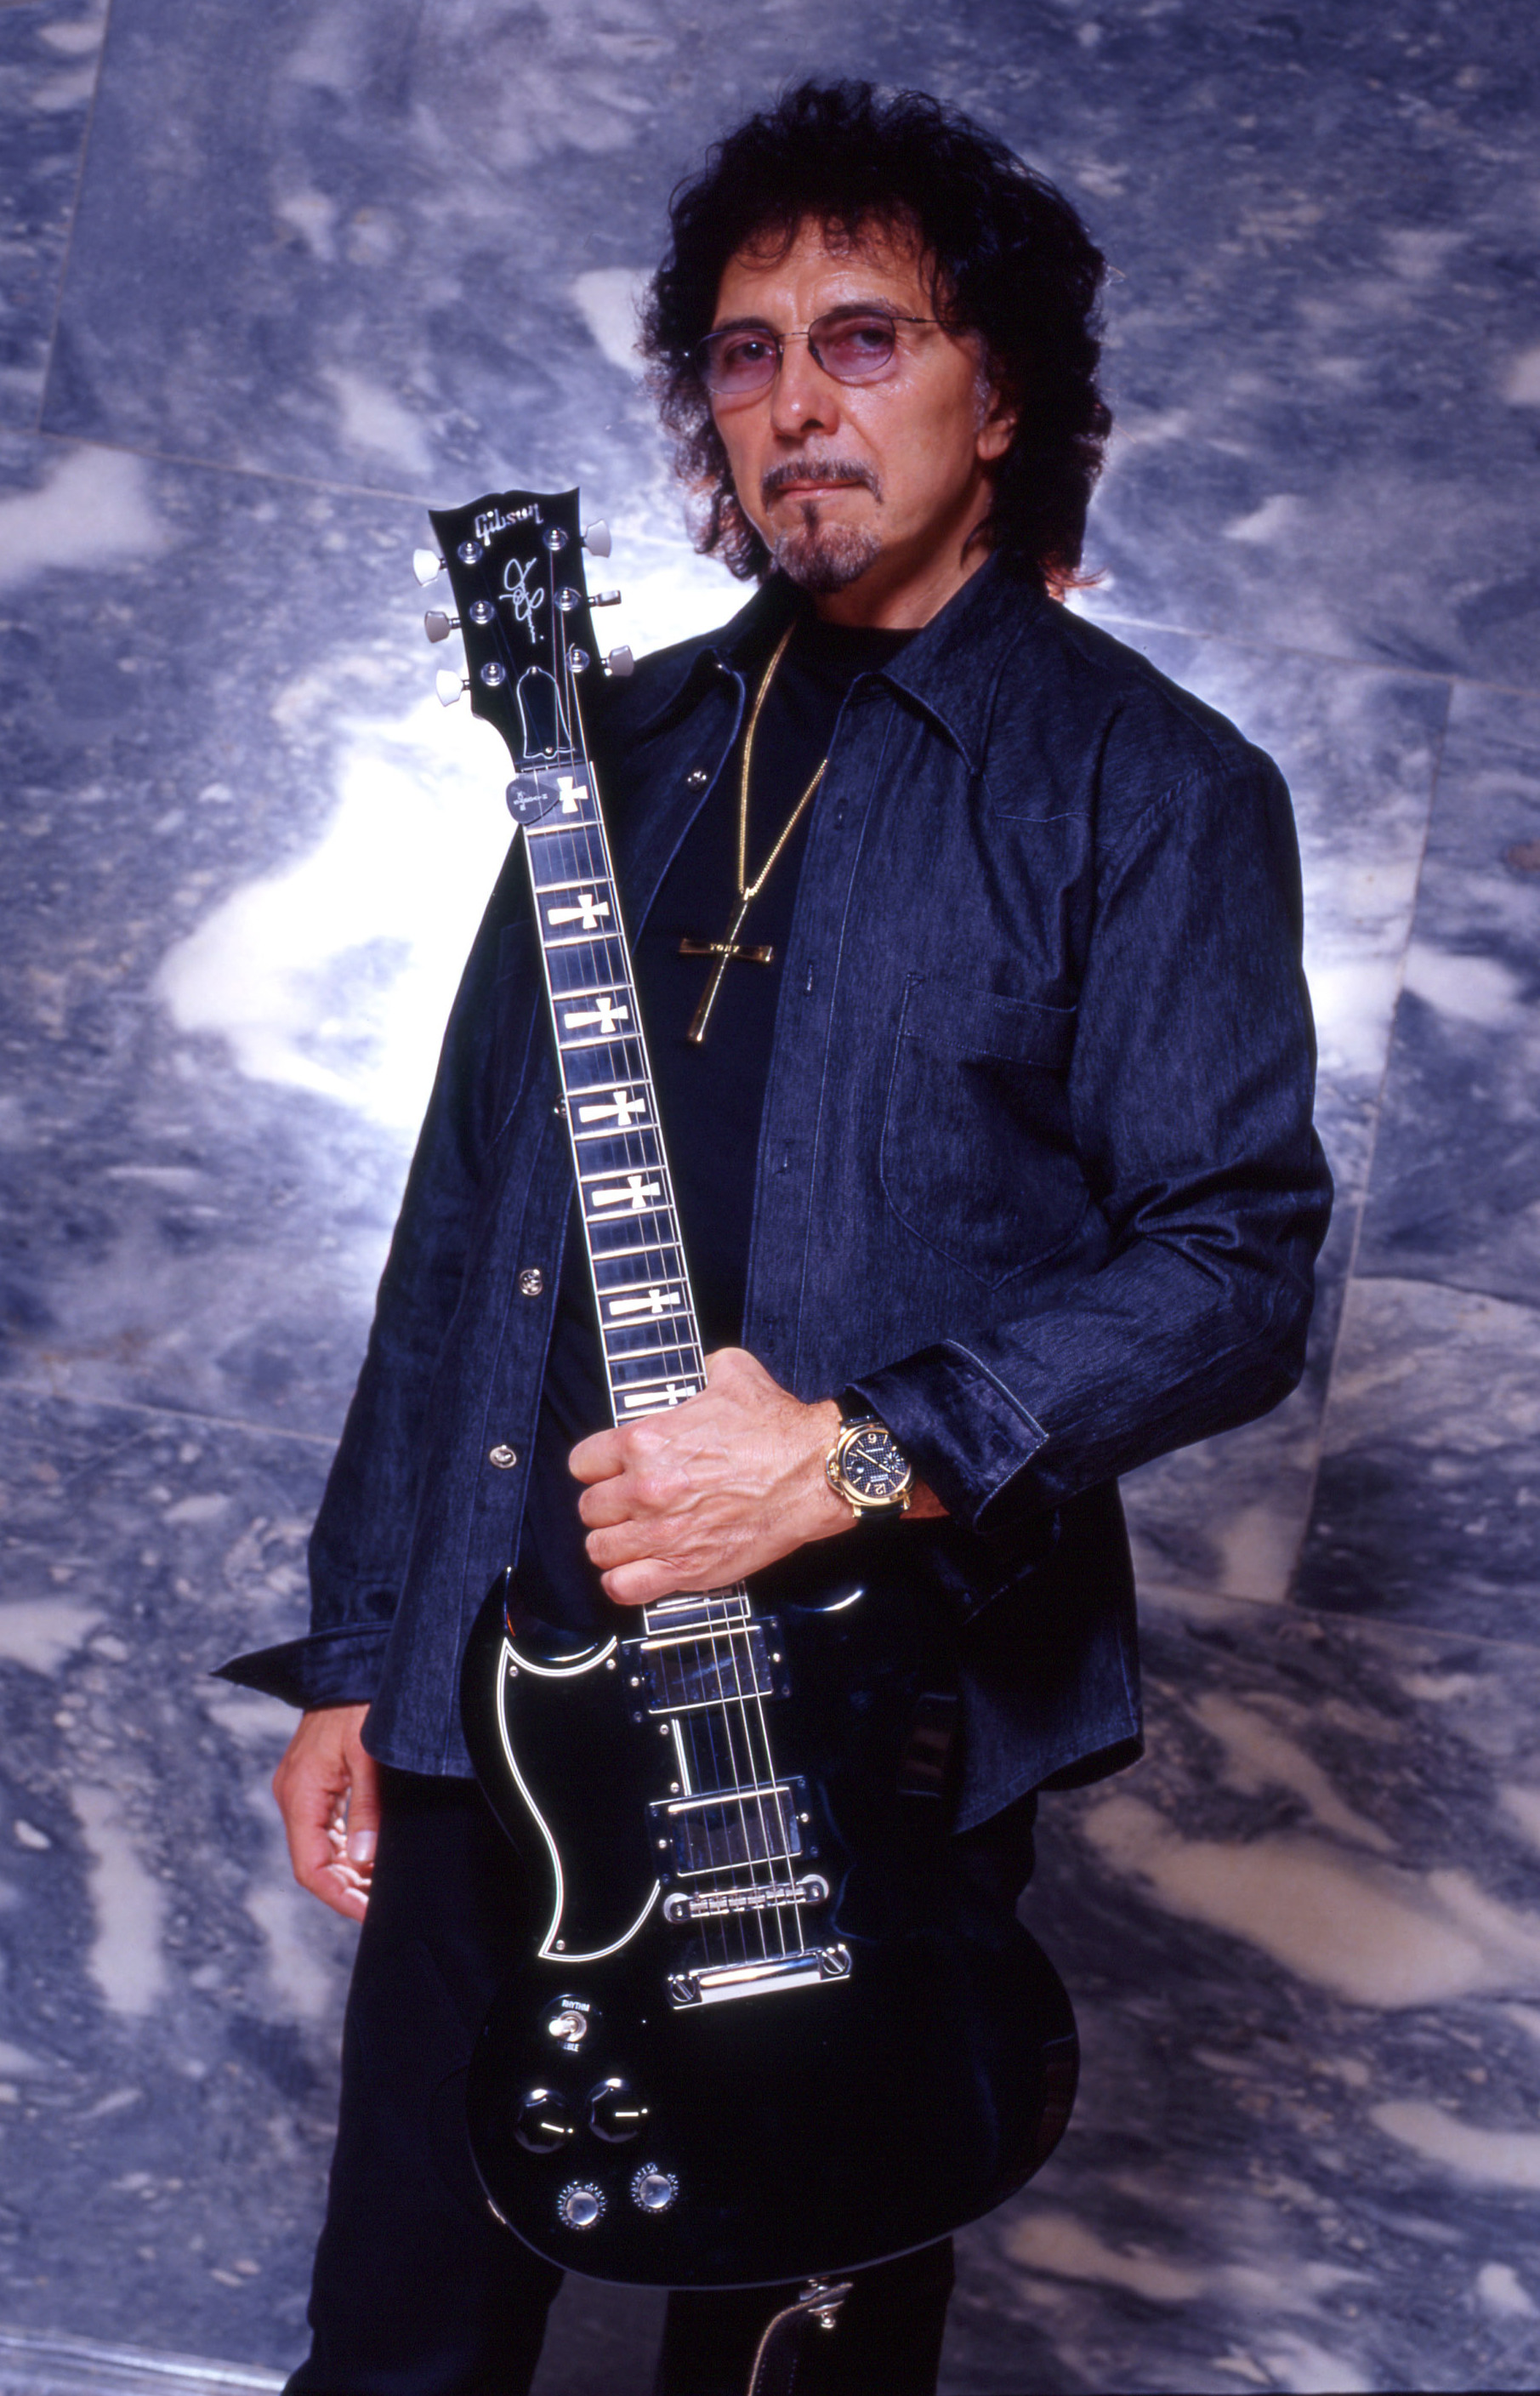 Single Rose Wallpaper Hd Biography The Official Tony Iommi Website